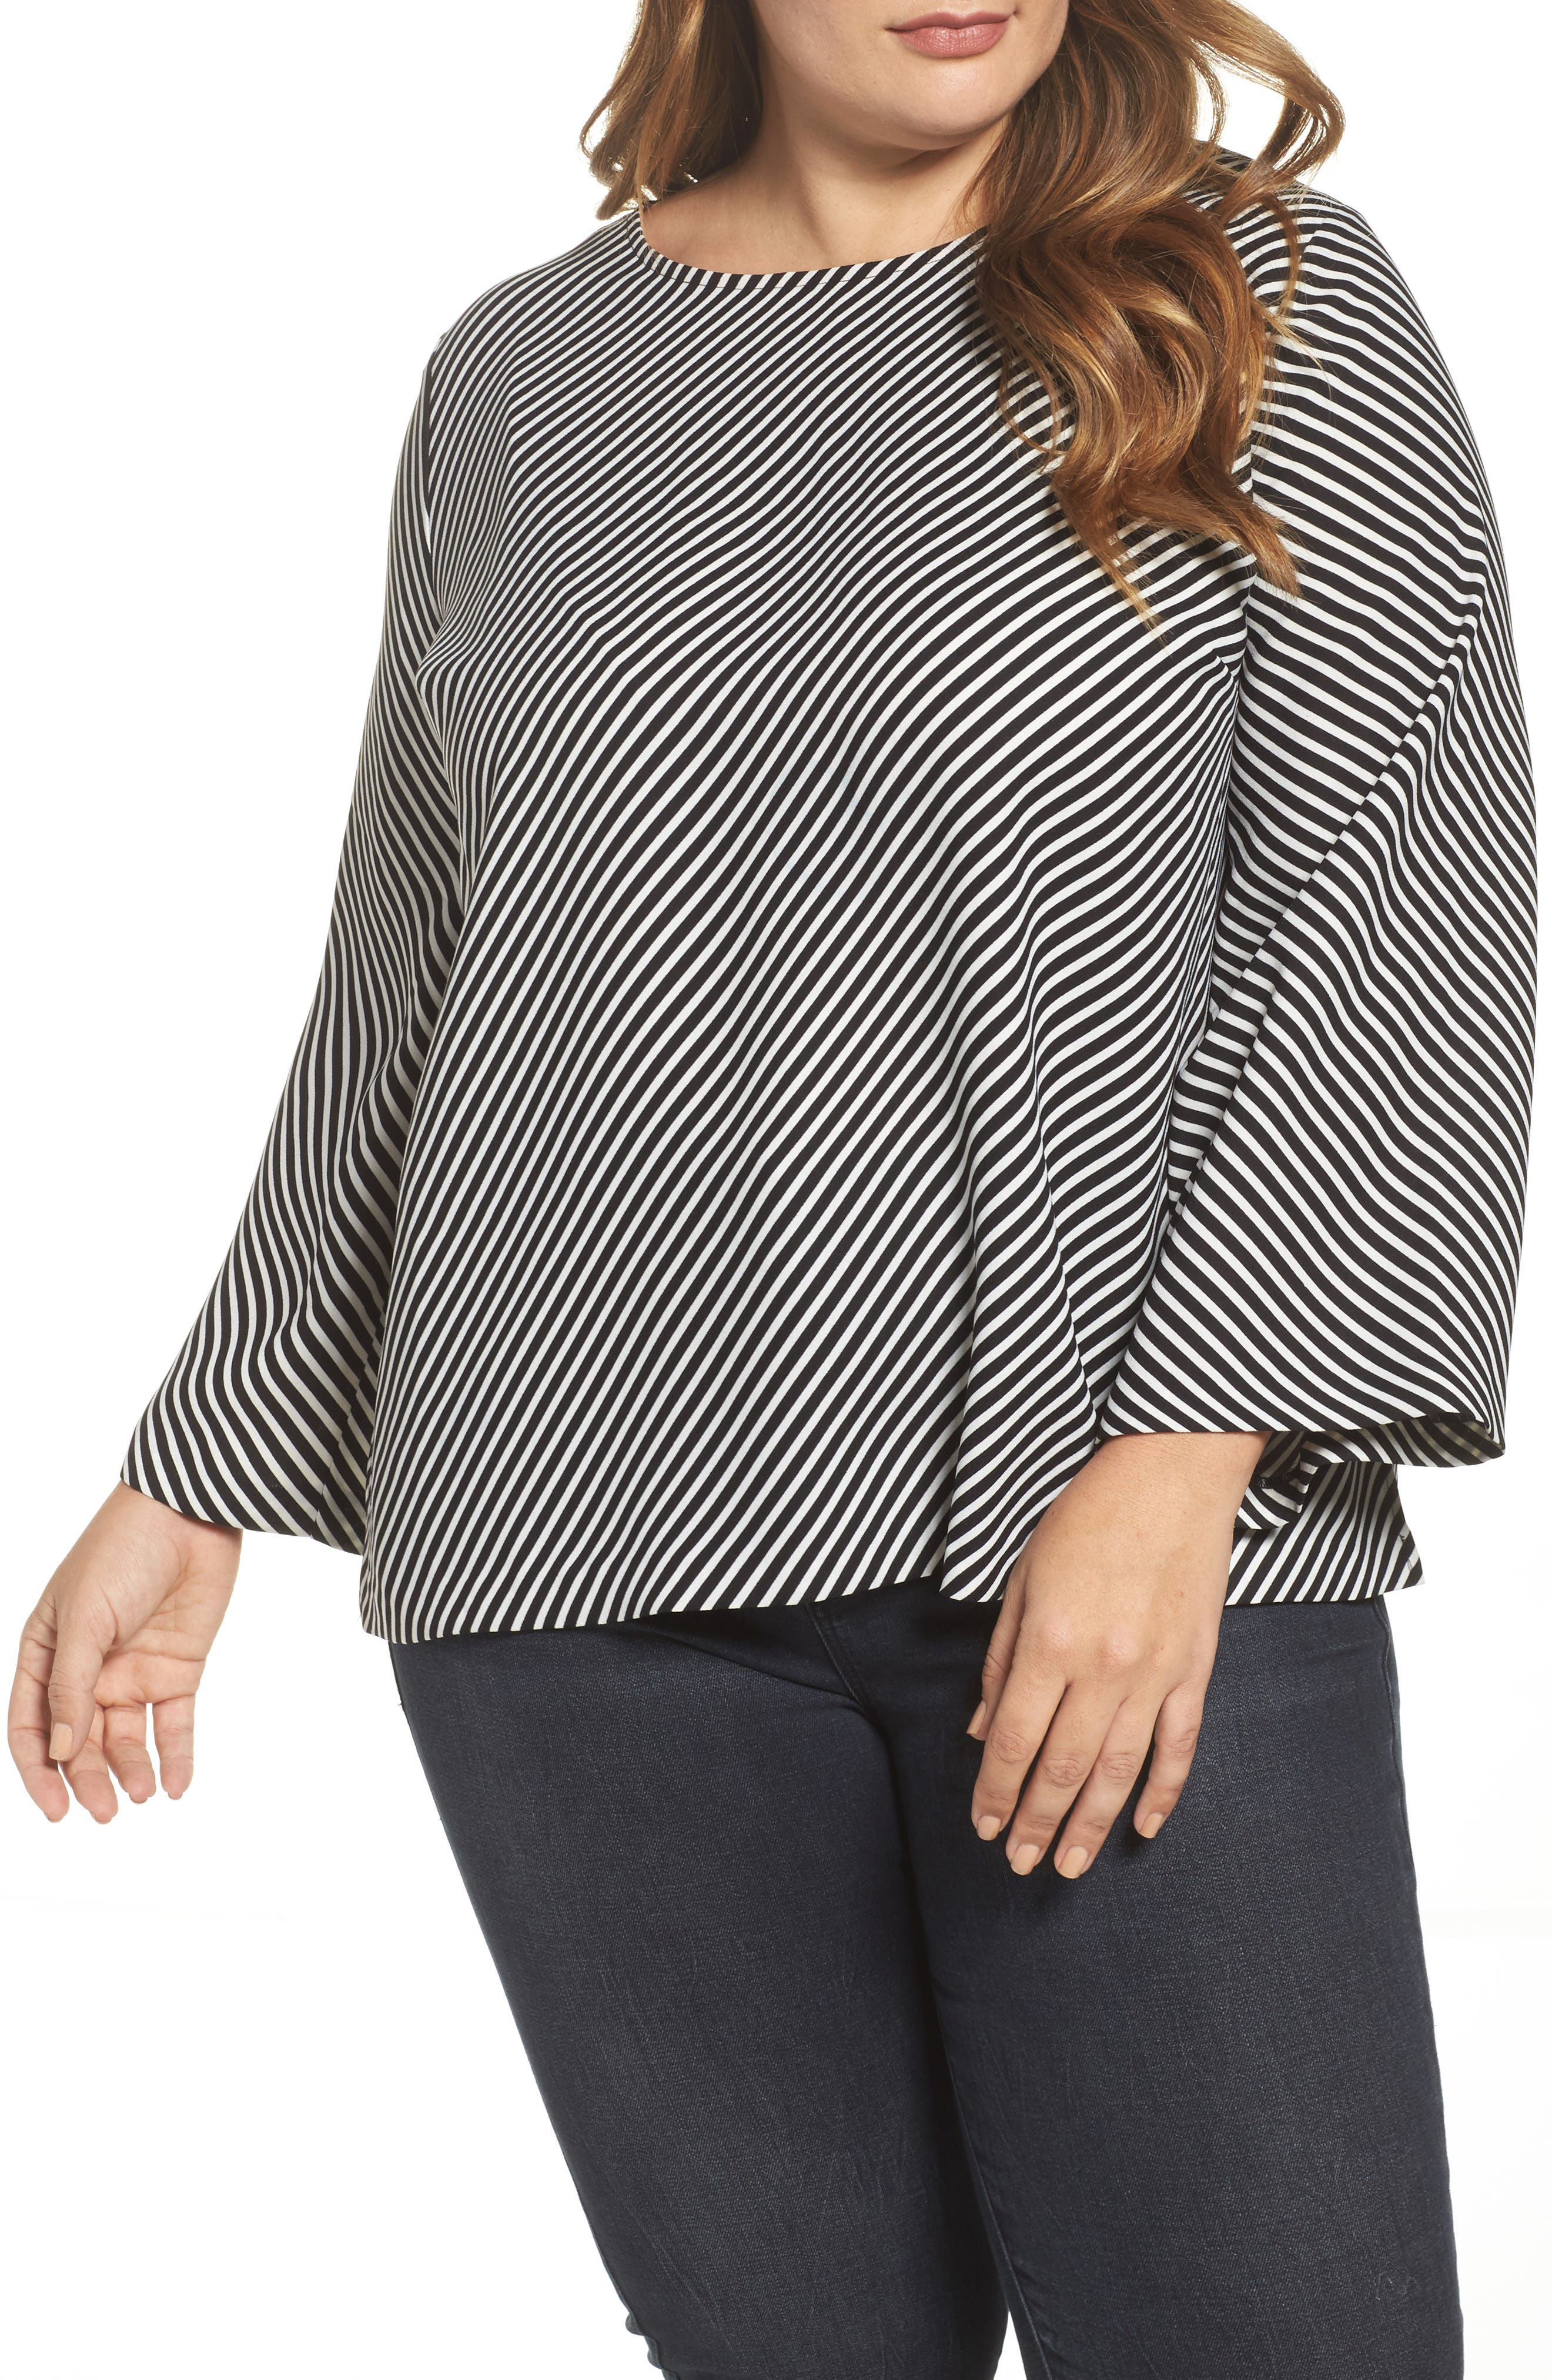 Main Image - Vince Camuto Bell Sleeve Diagonal Stripe Blouse (Plus Size)